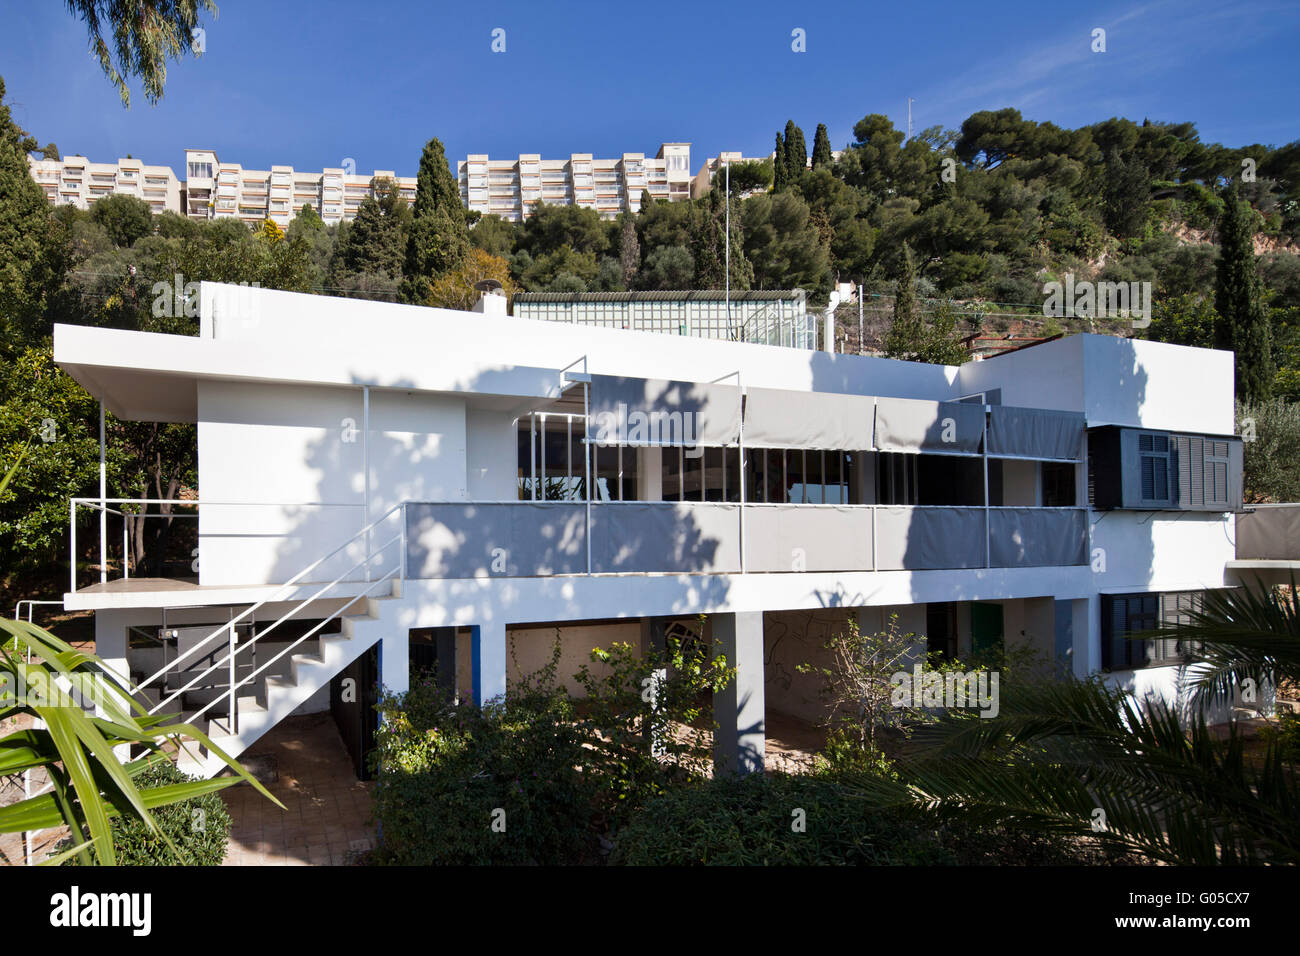 Eileen Gray's house E-1027, Roquebrune-Cap-Martin, France. Architect:  Eileen Gray, 1929.